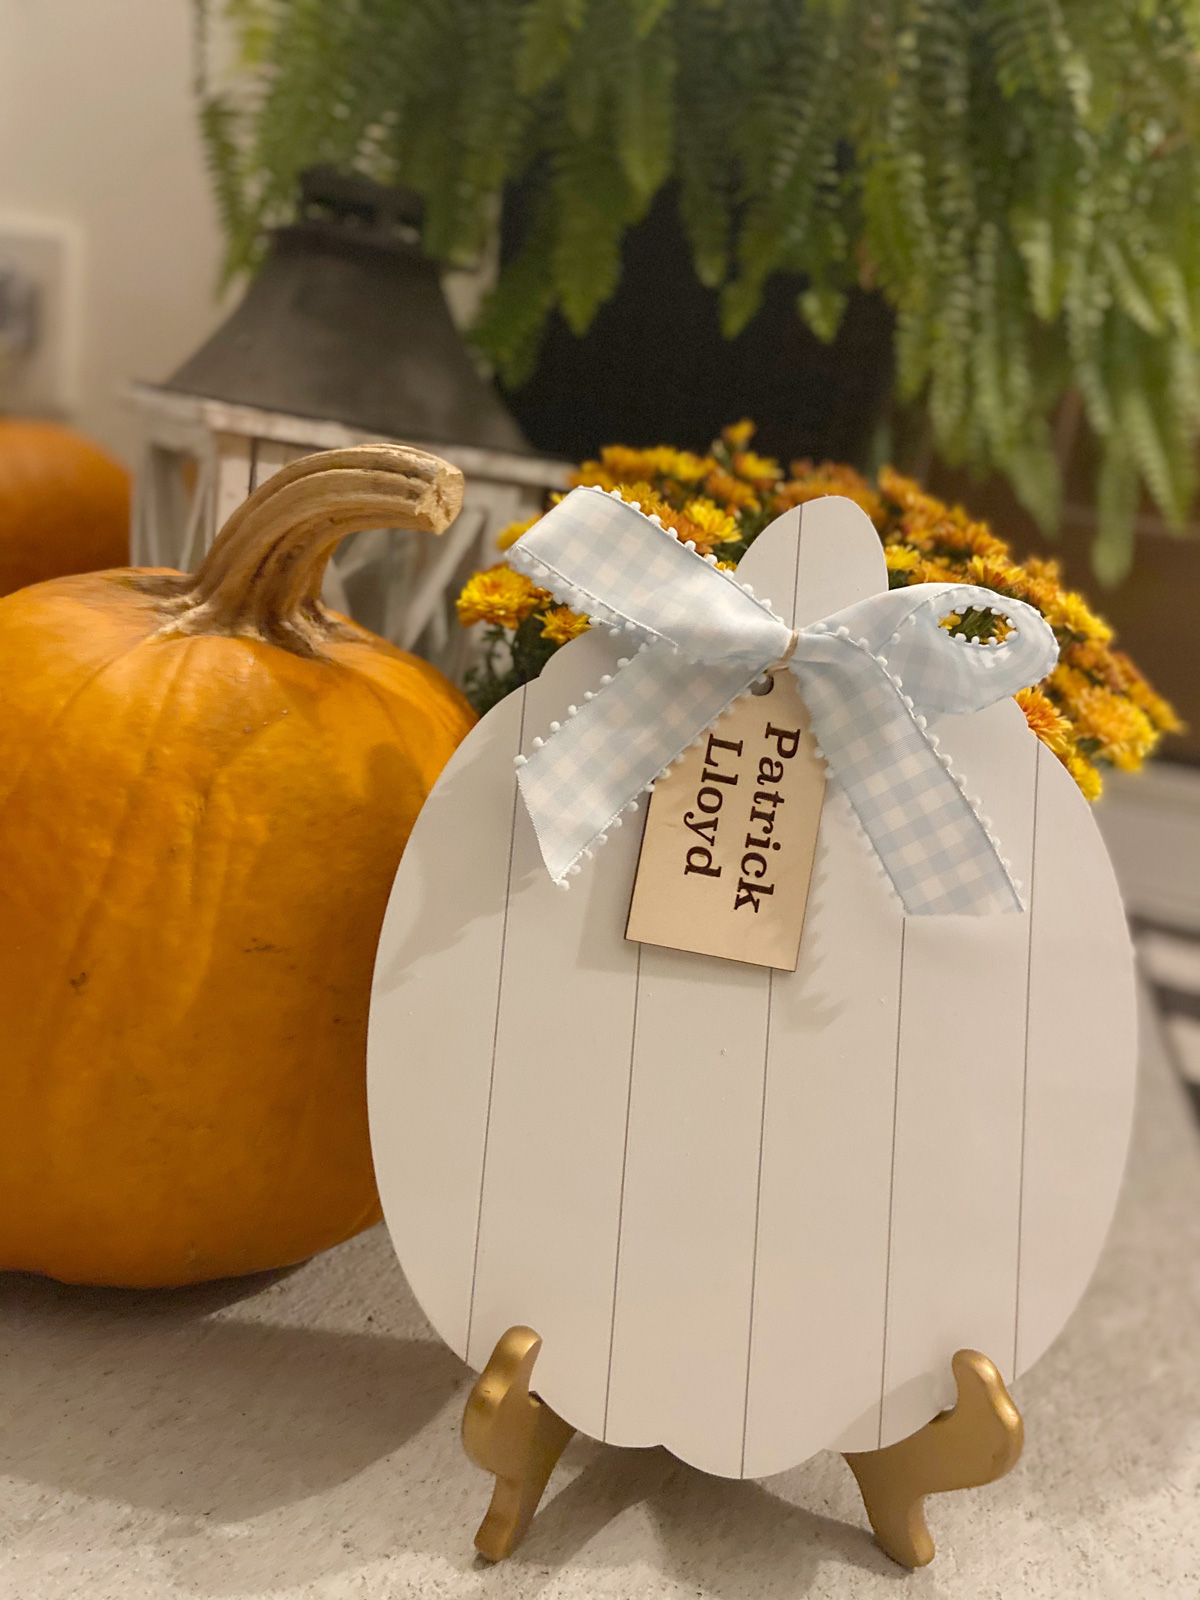 Patrick's pumpkin - The White Pumpkin for Baby Who Died